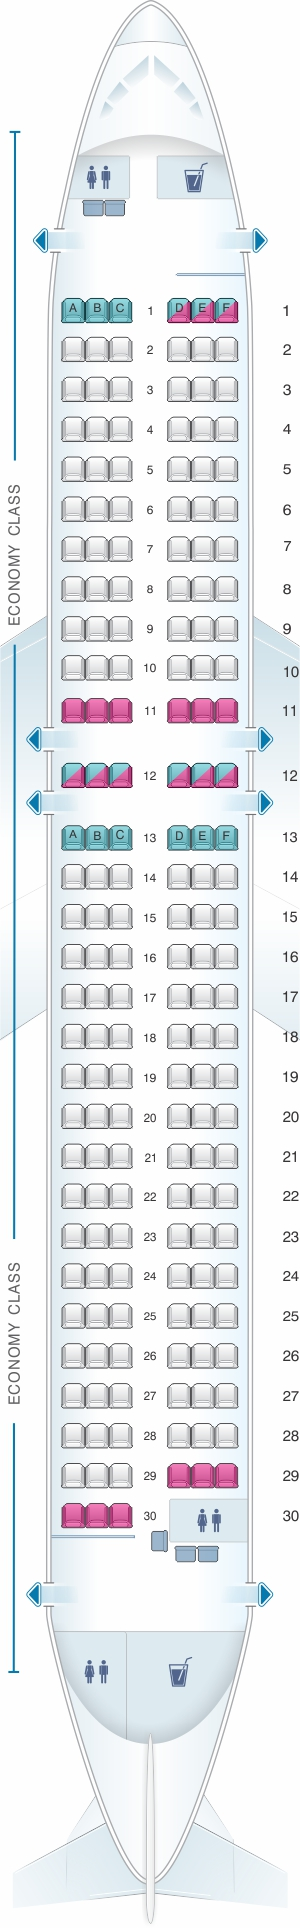 Seat map for QantasLink Airbus A320 200